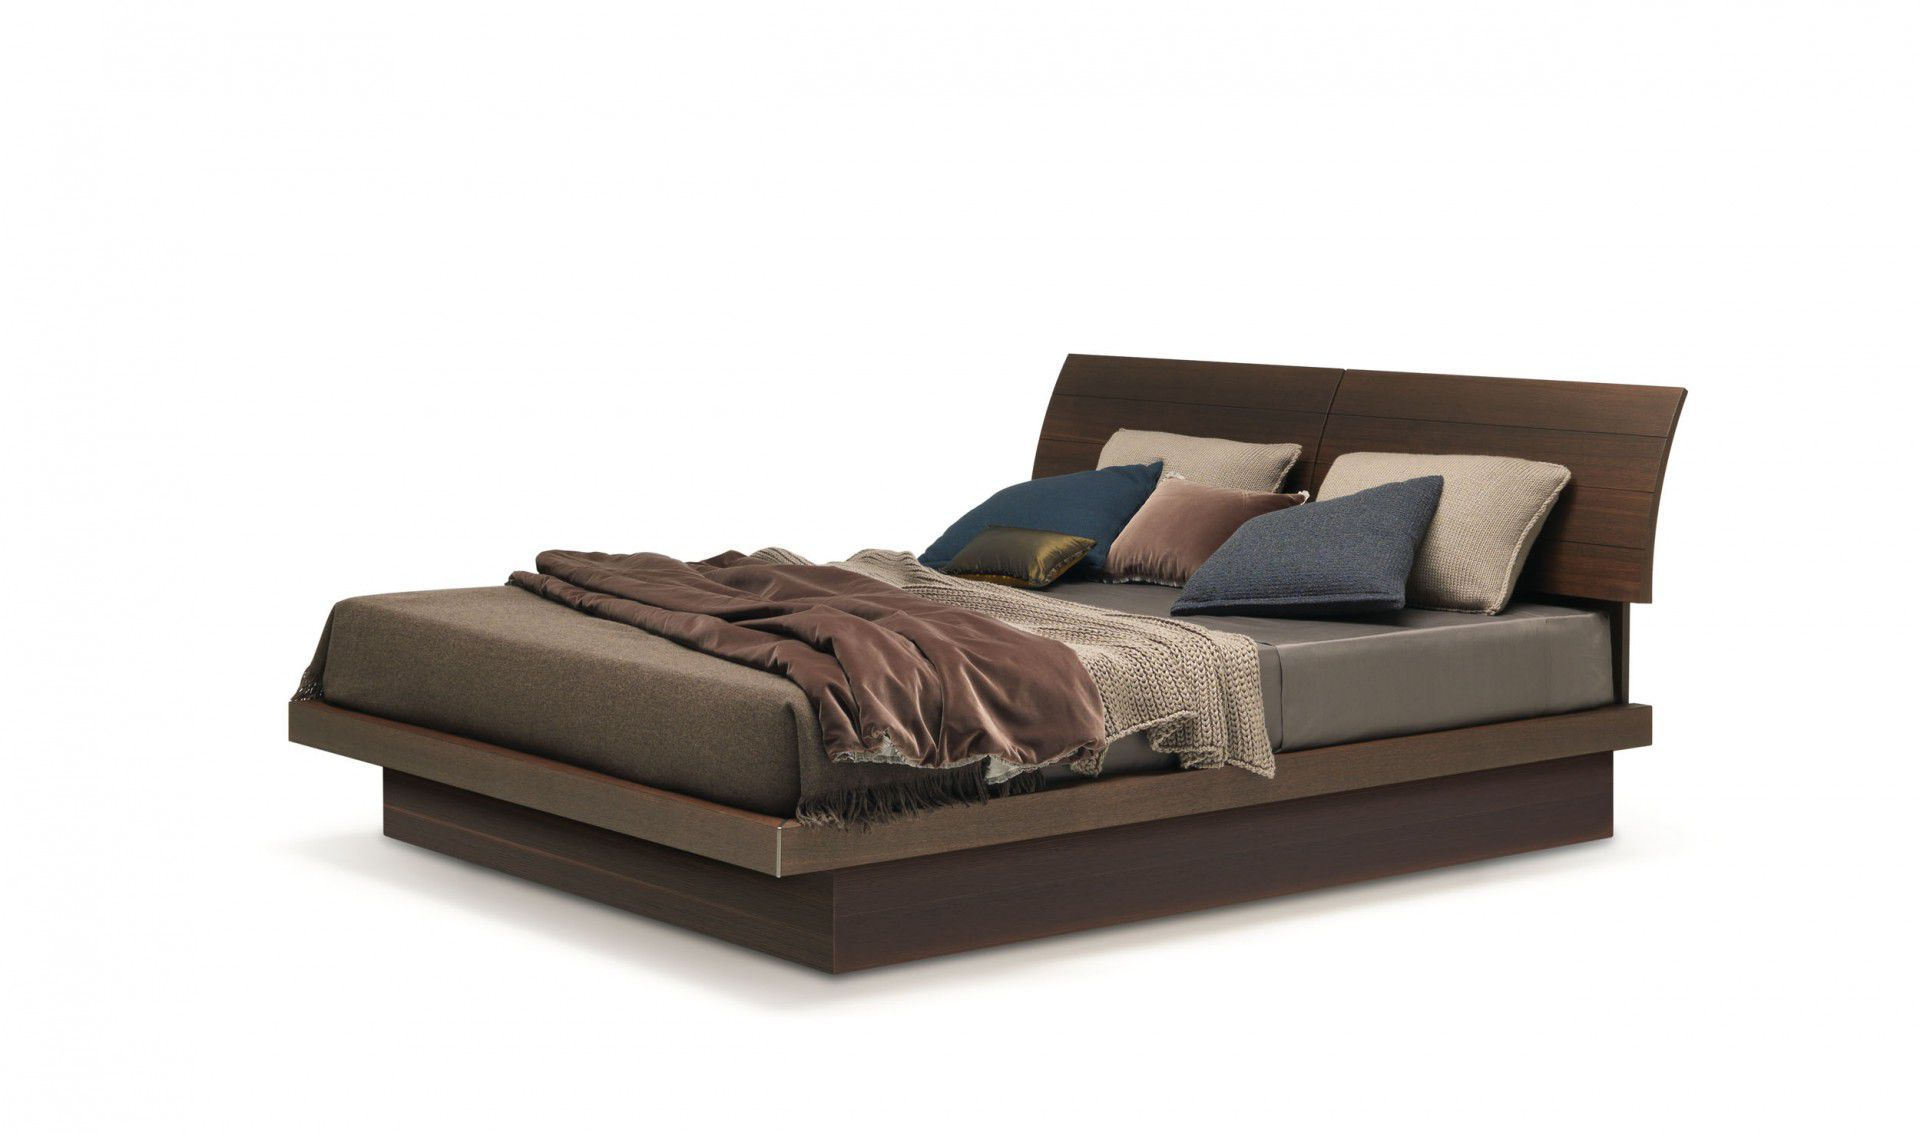 misuraemme furniture. Double Bed / Contemporary With Headboard Wooden - GIORGIA By Ennio Arosio Misuraemme Furniture R